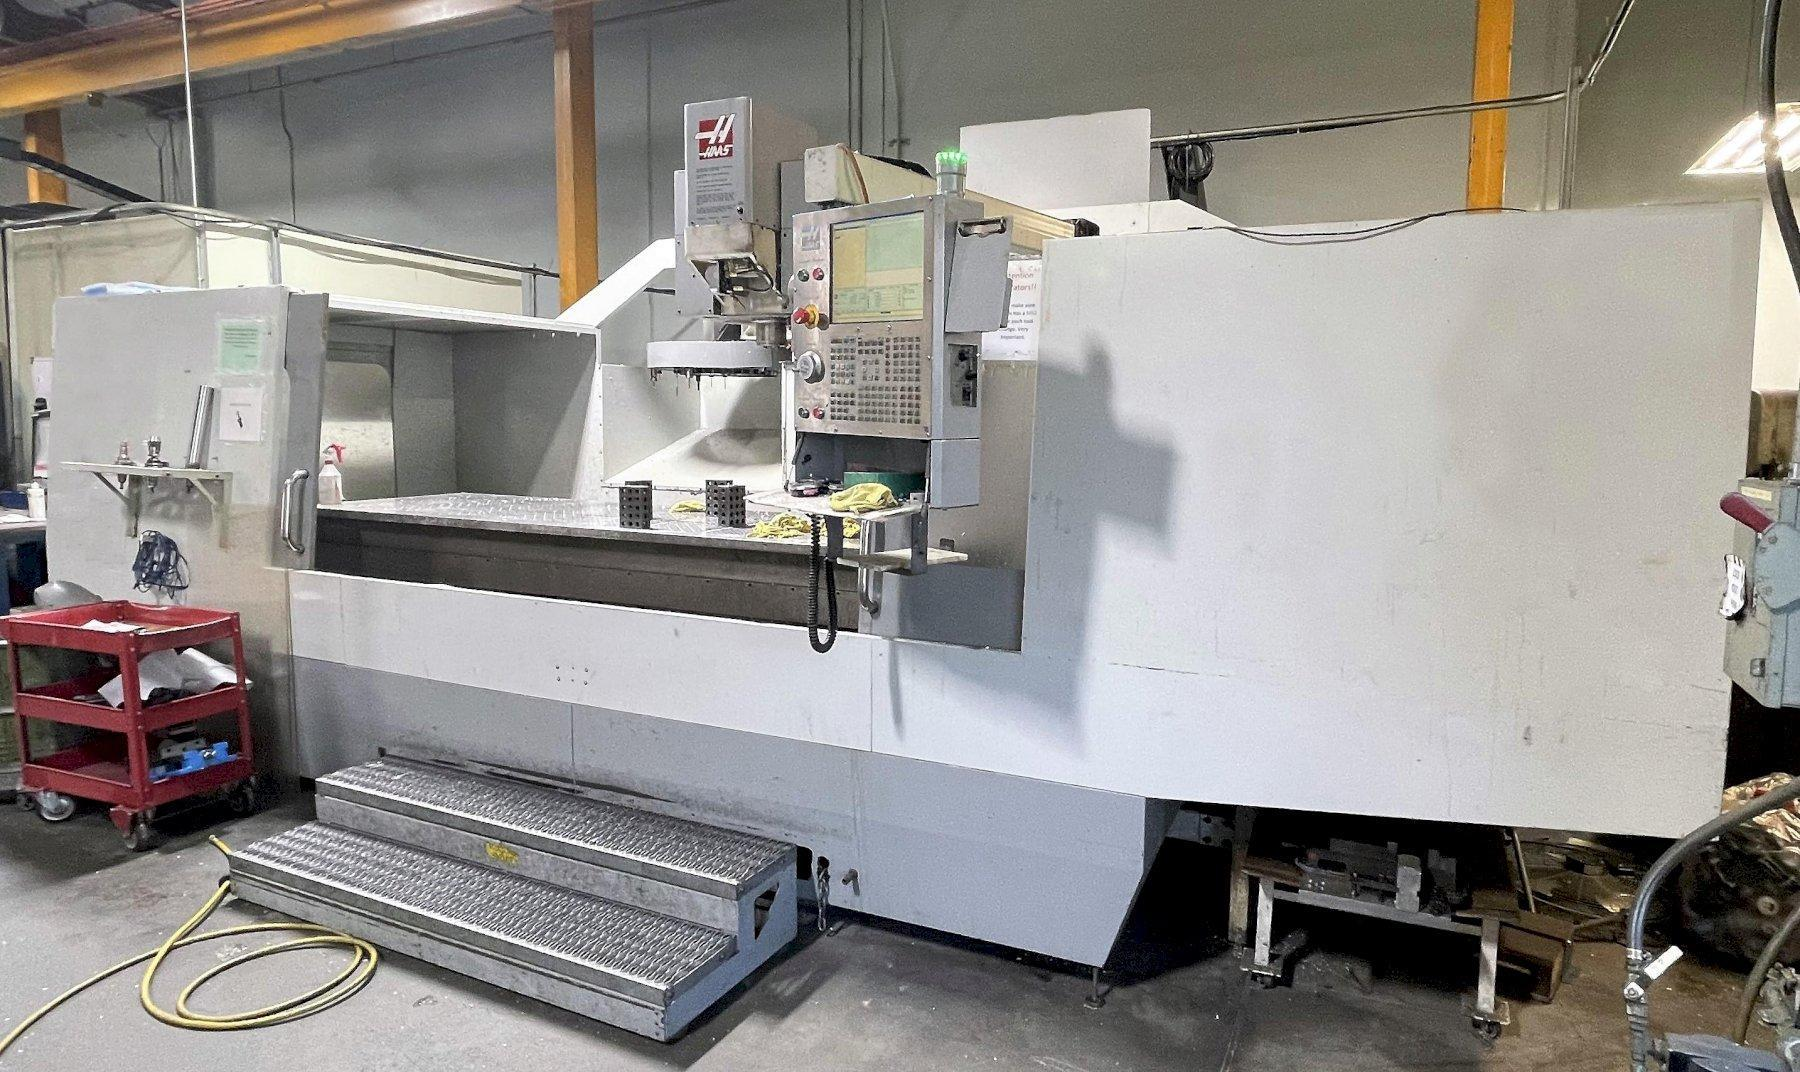 Haas VR-11 5-Axis VMC 1999 / 2010 Haas Control Up Dated , Full 5-Axis, 10,000 RPM Spindle, Coolant Thru Spindle, CT-40 Taper, Rigid Tap, Chip Auger, Linear Scales, and Prog. Coolant.